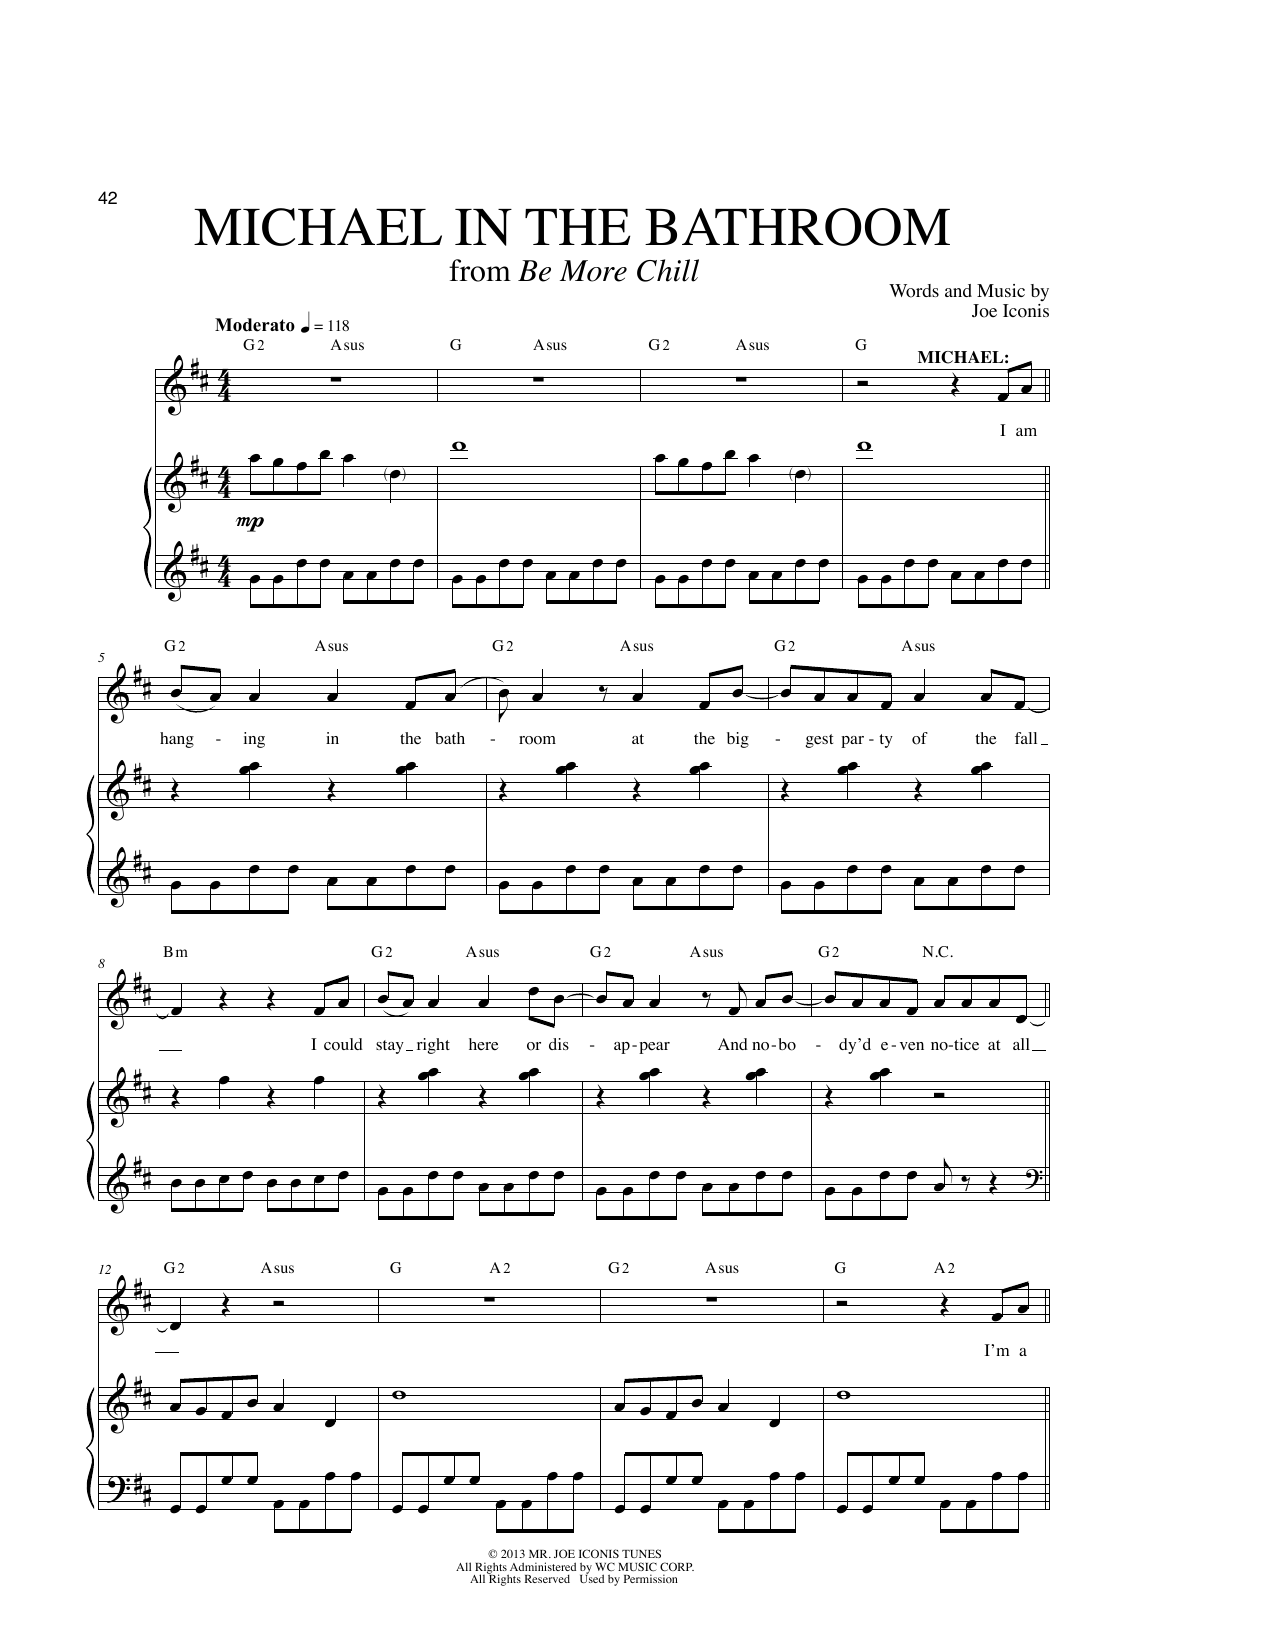 Michael In The Bathroom Sheet Music Direct - Michael in the bathroom piano